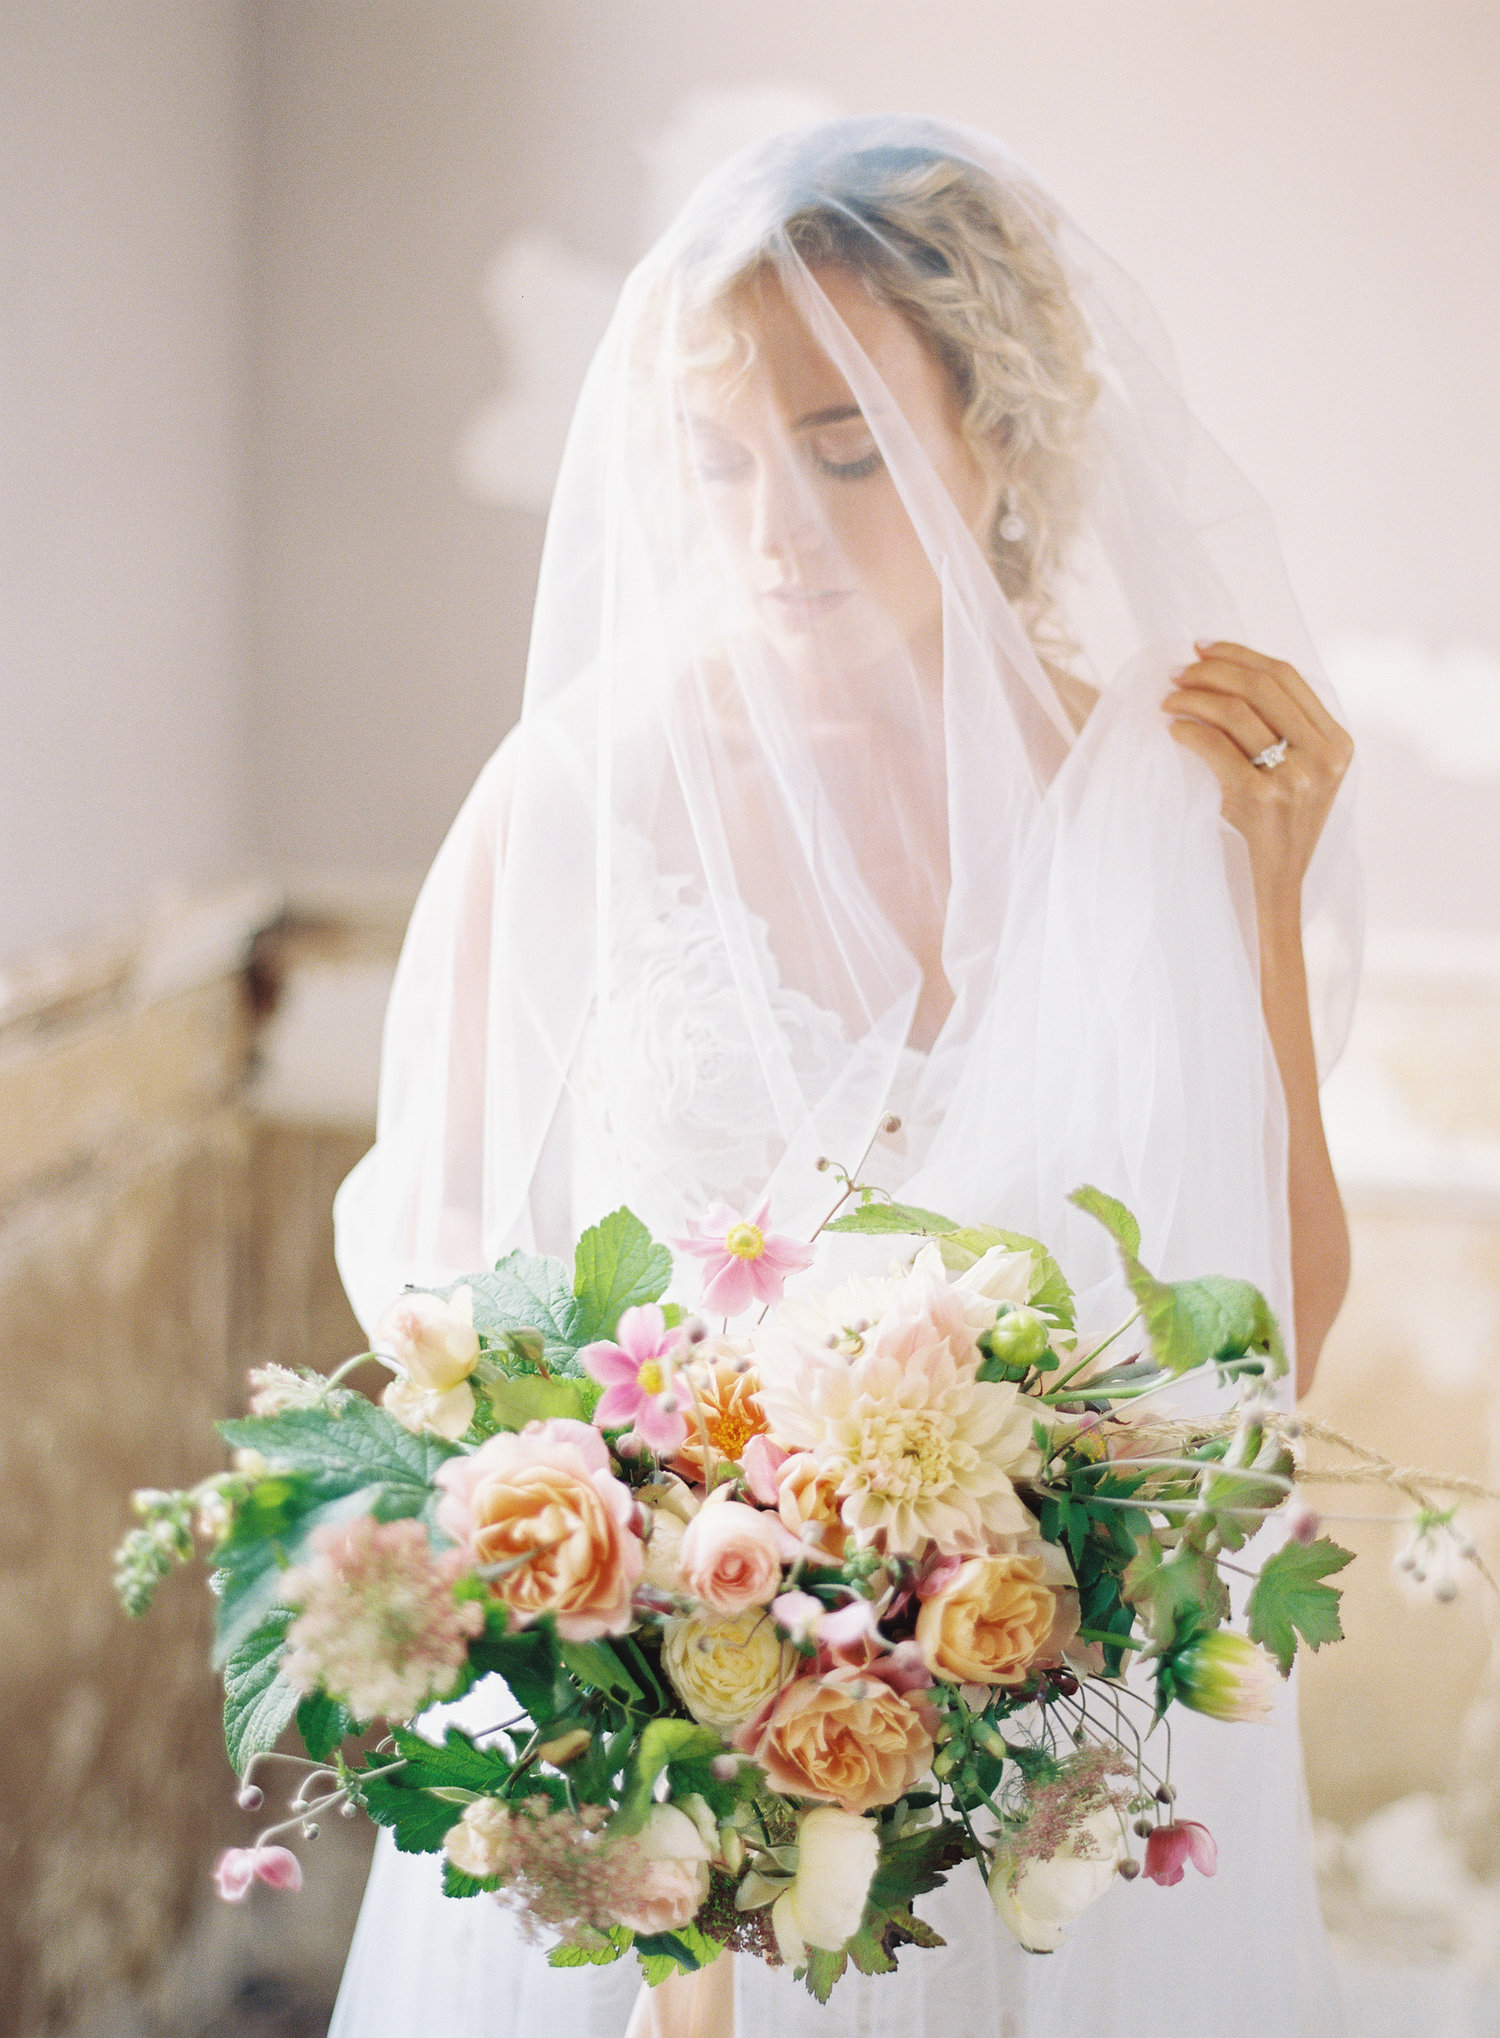 Industrial Romantic - forBaltimore Bride